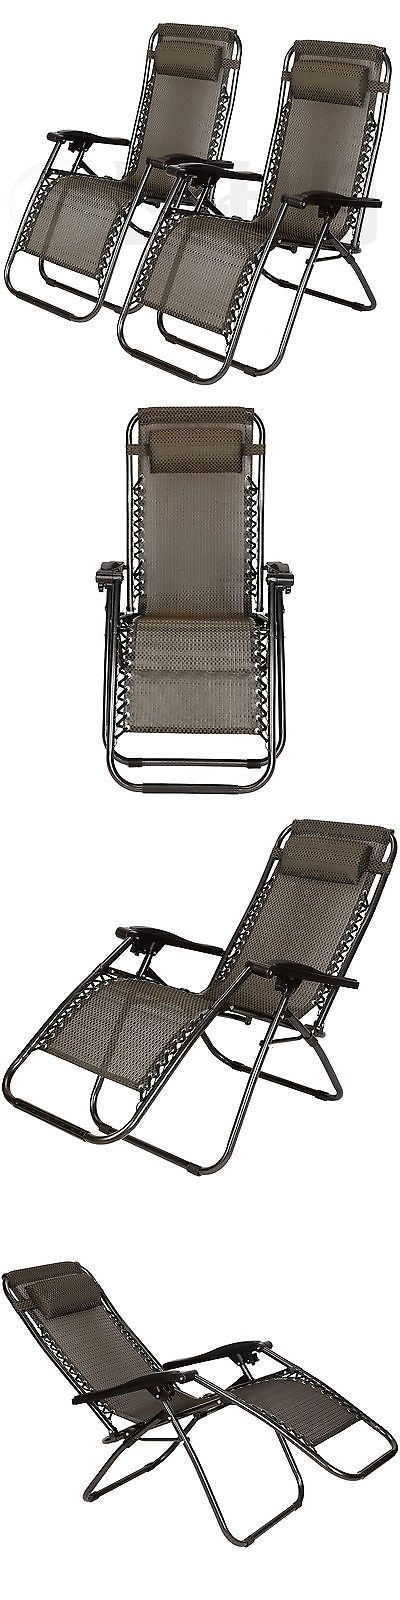 Lounges 79684: Zero Gravity Chairs Case Of (2) Folding Lounge Patio Chairs Outdoor Yard Beach -> BUY IT NOW ONLY: $66.9 on eBay!